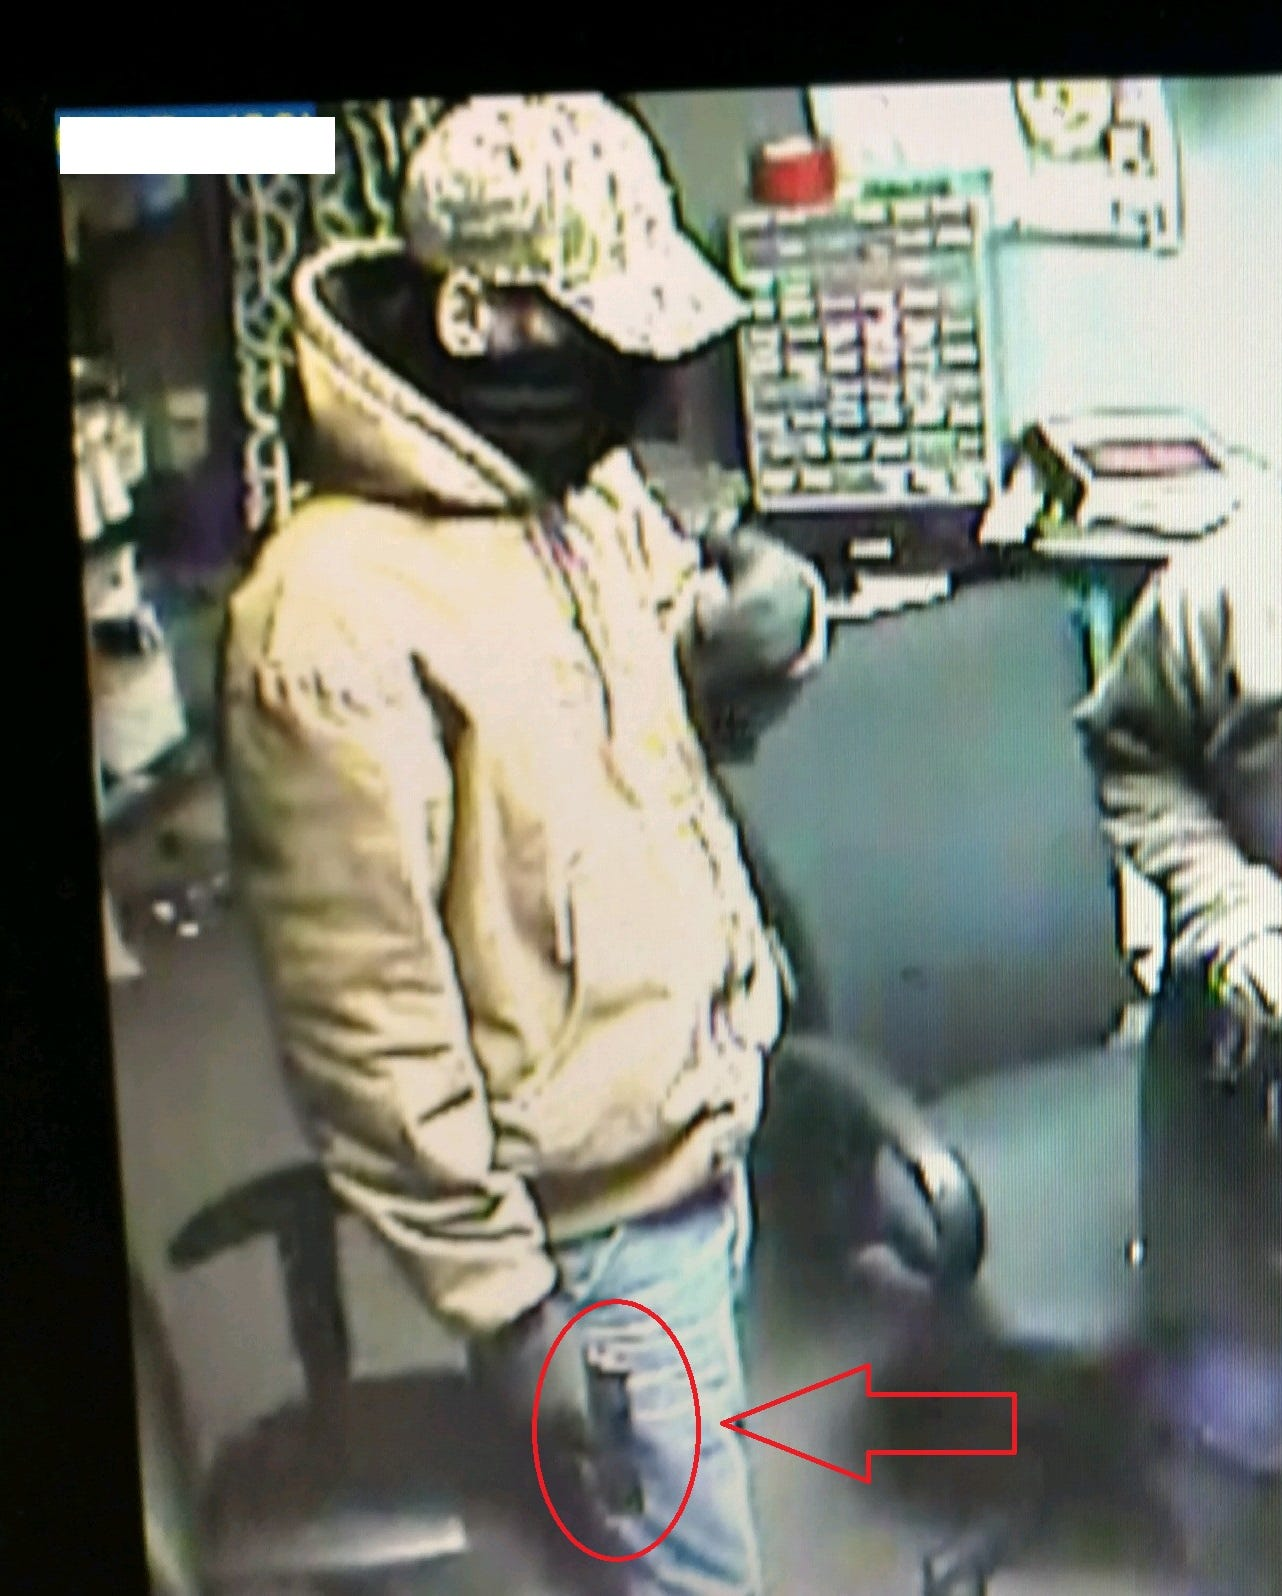 Broome County Sheriff's deputies are looking for the suspect in a Dunkin Donuts robbery on Country Club Road, Endwell.